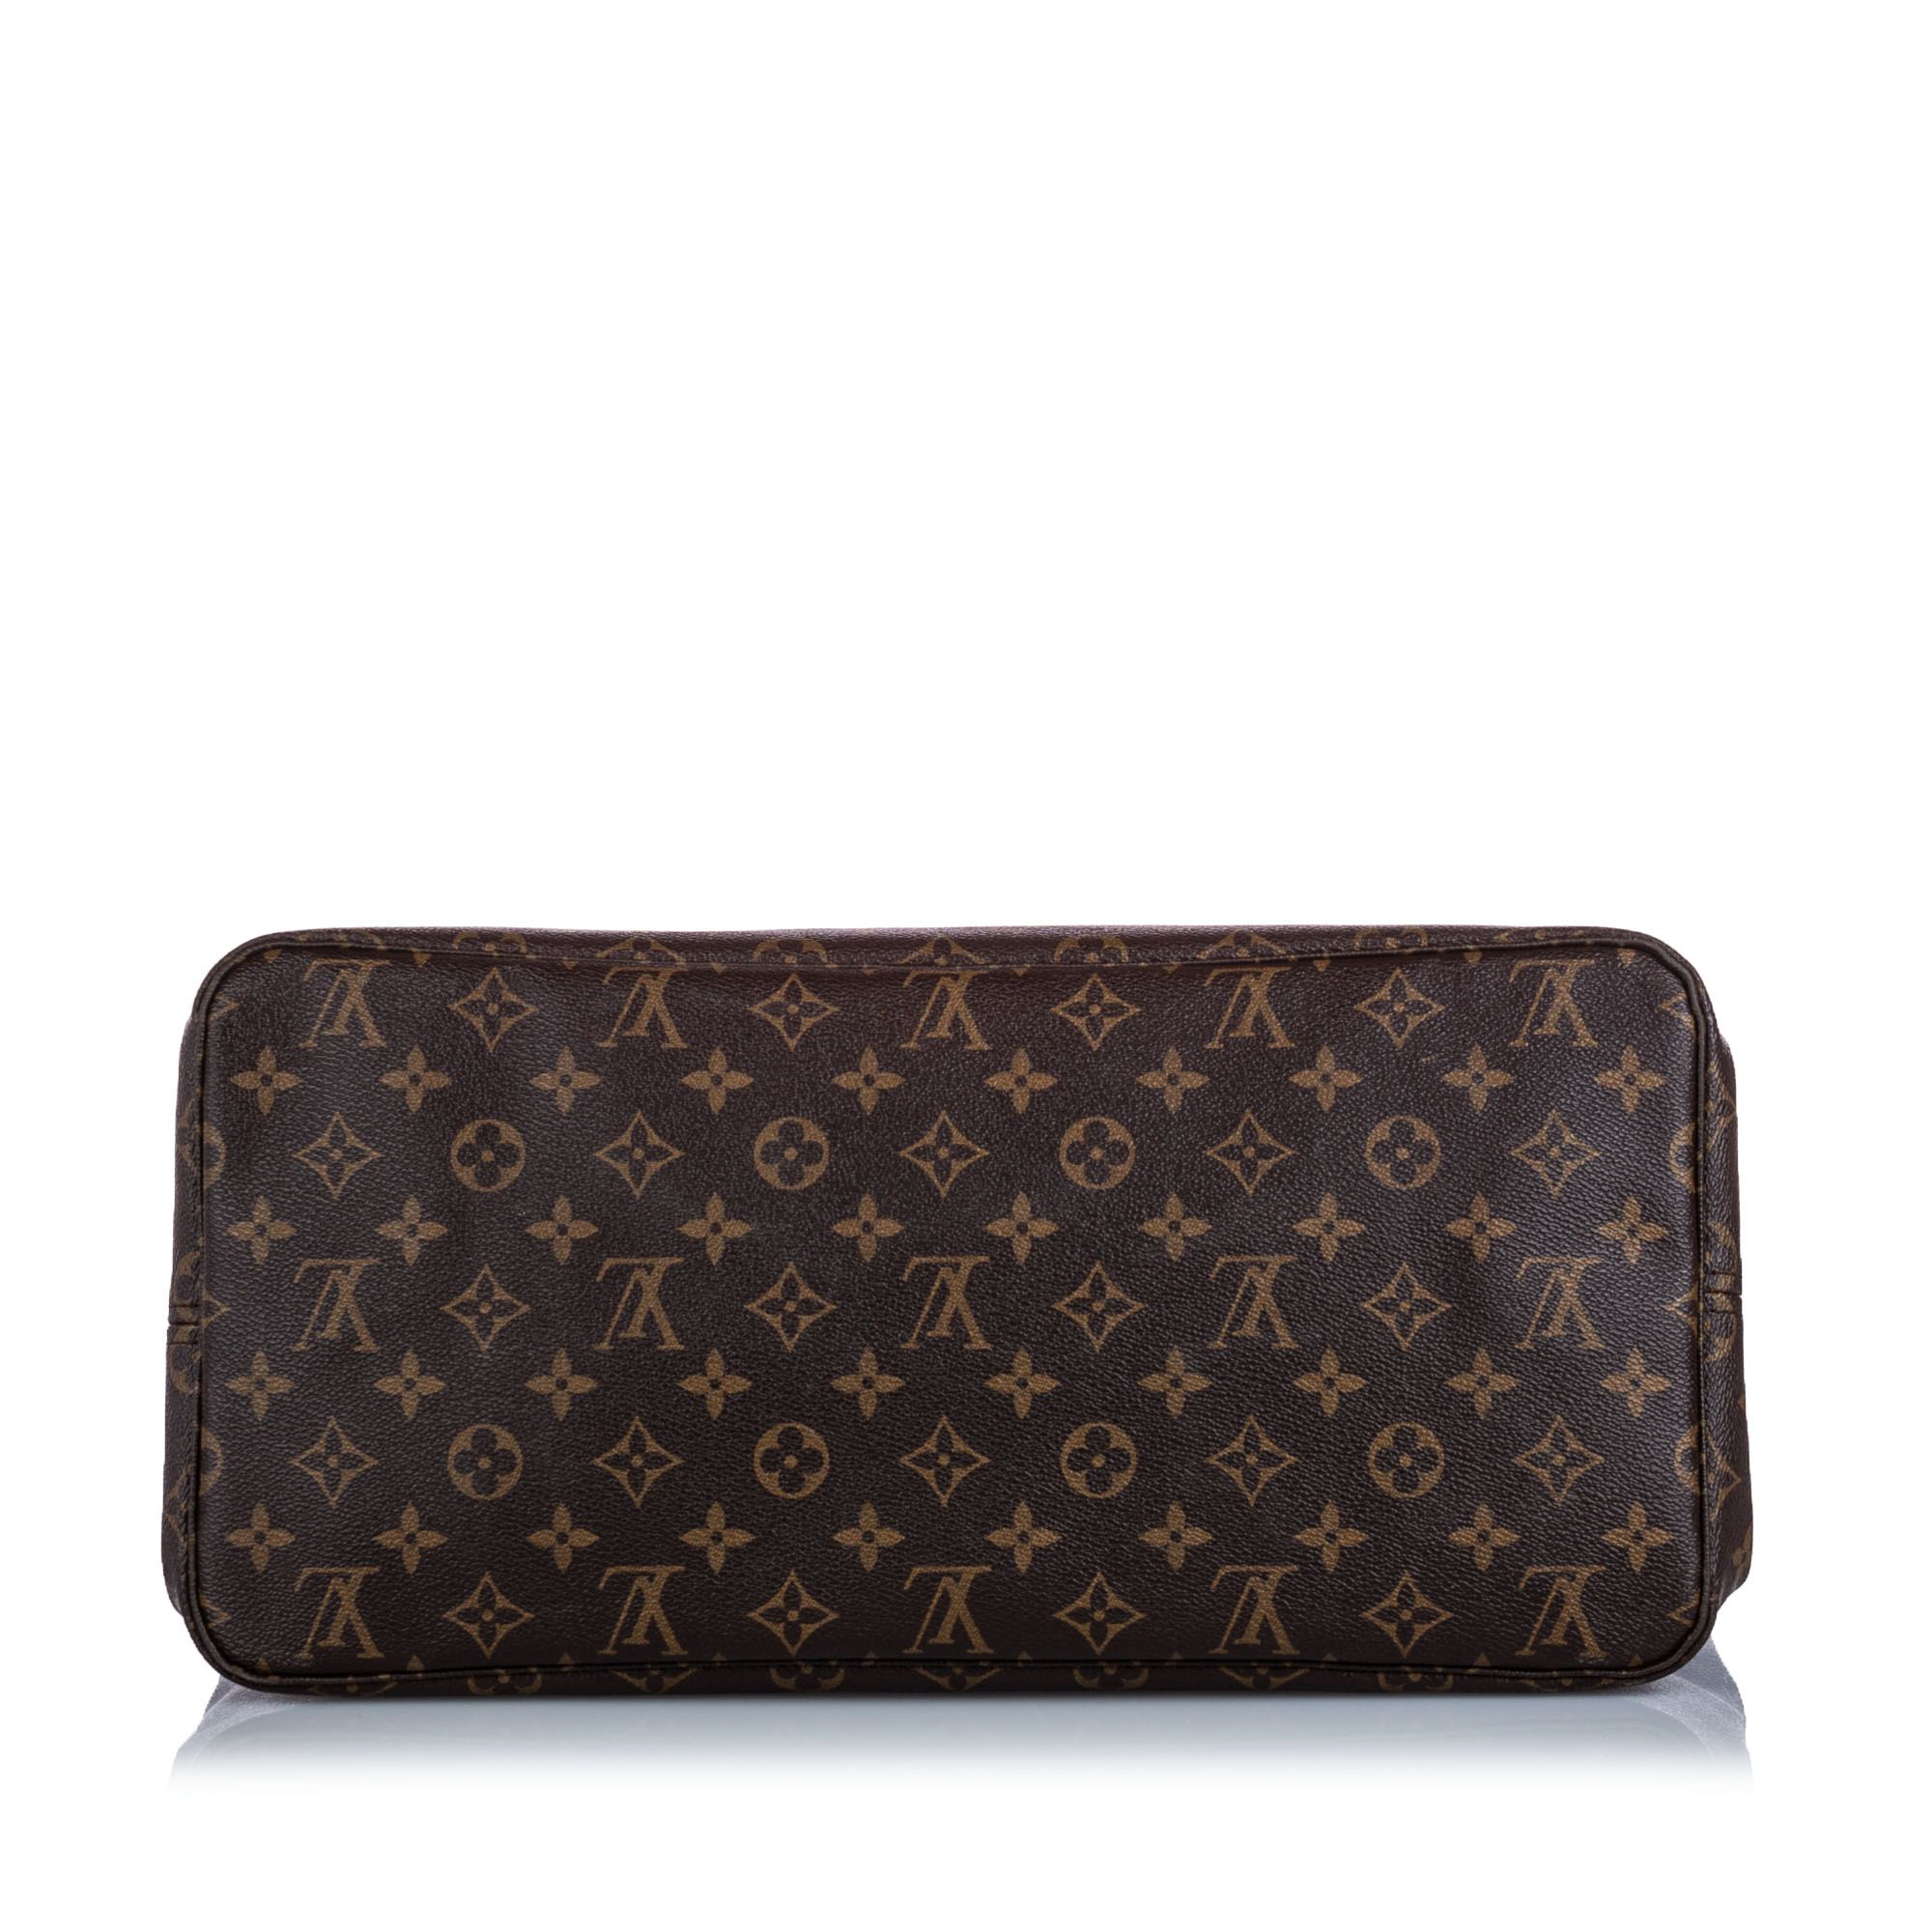 Vintage Louis Vuitton Monogram Neverfull GM Brown